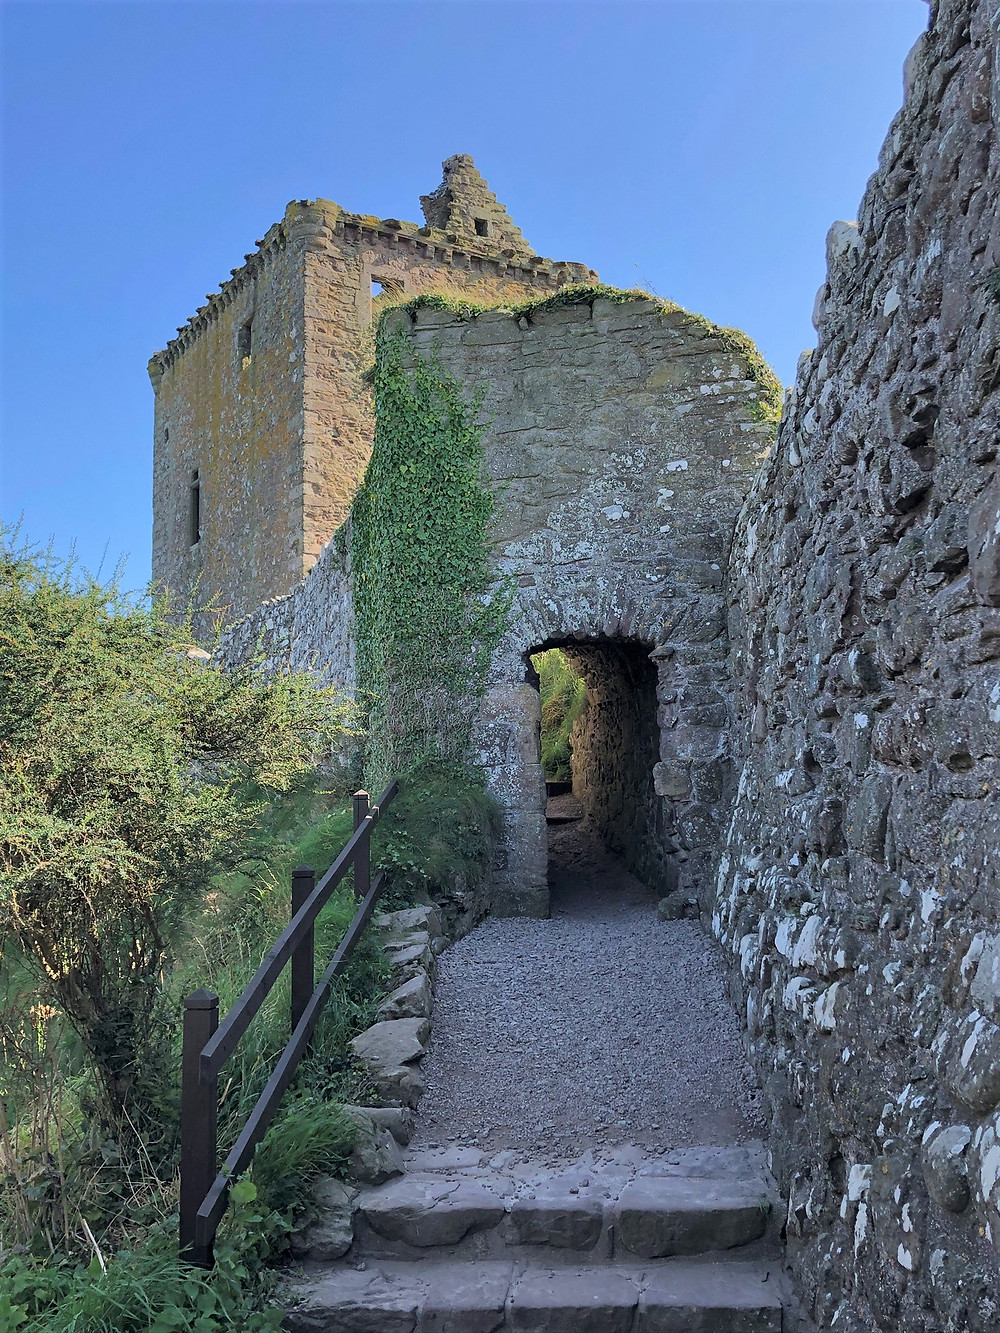 Exiting the Dunnottar Castle entrance with sweeping view of the complex